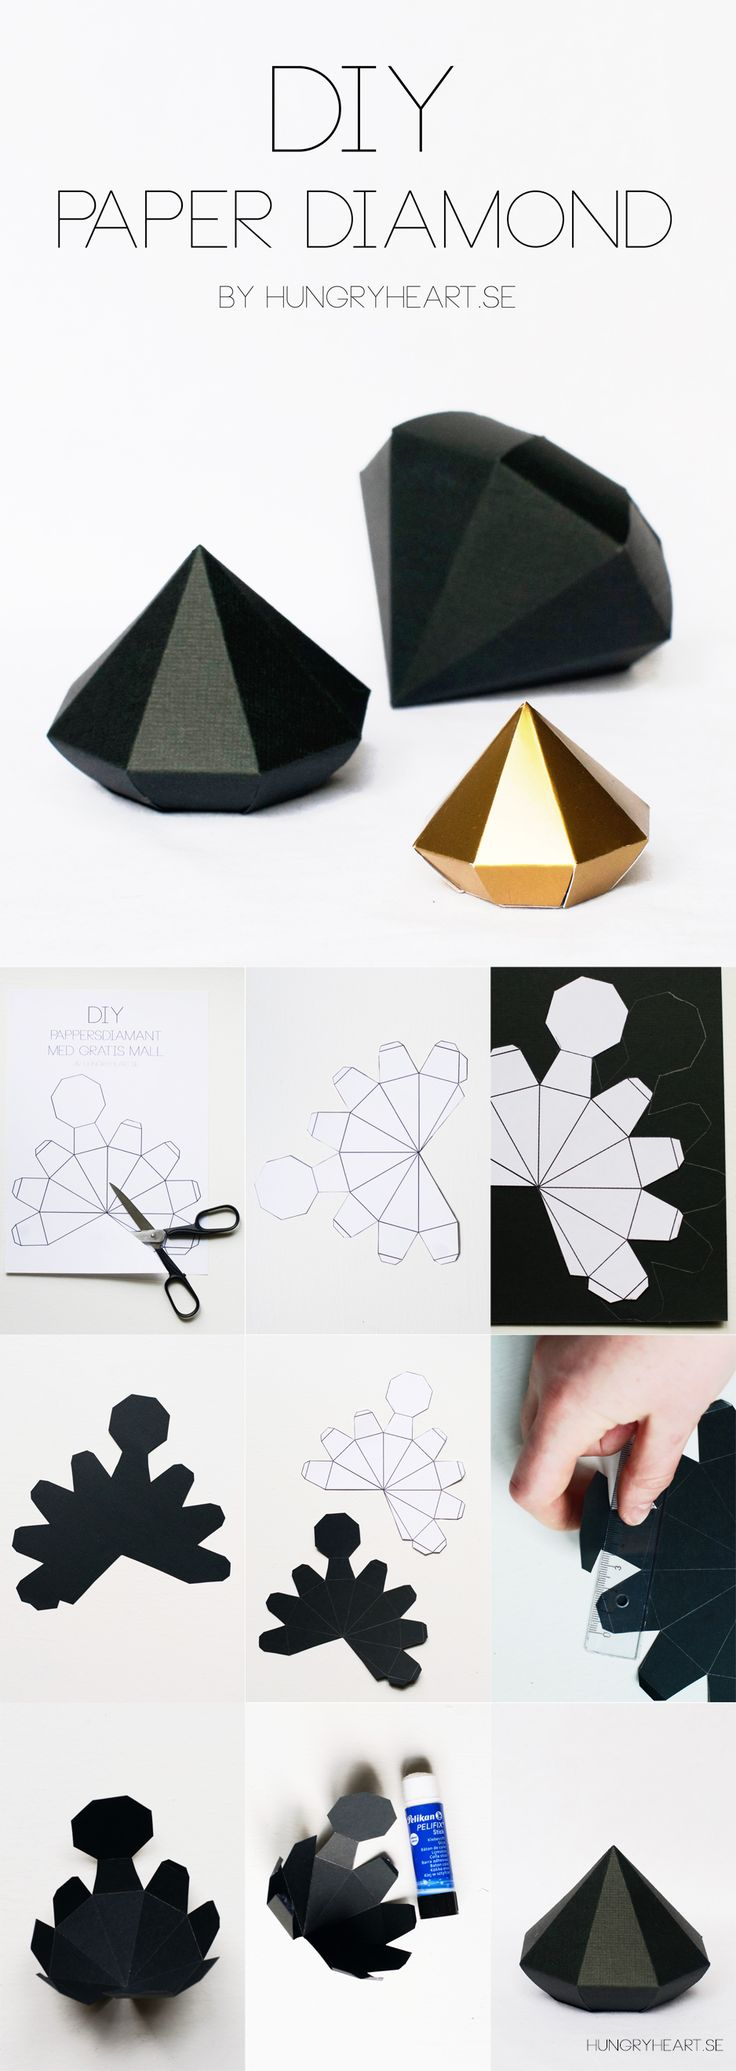 DIY Paper Diamond Tutorial with FREE Printable Template | HungryHeart.se More